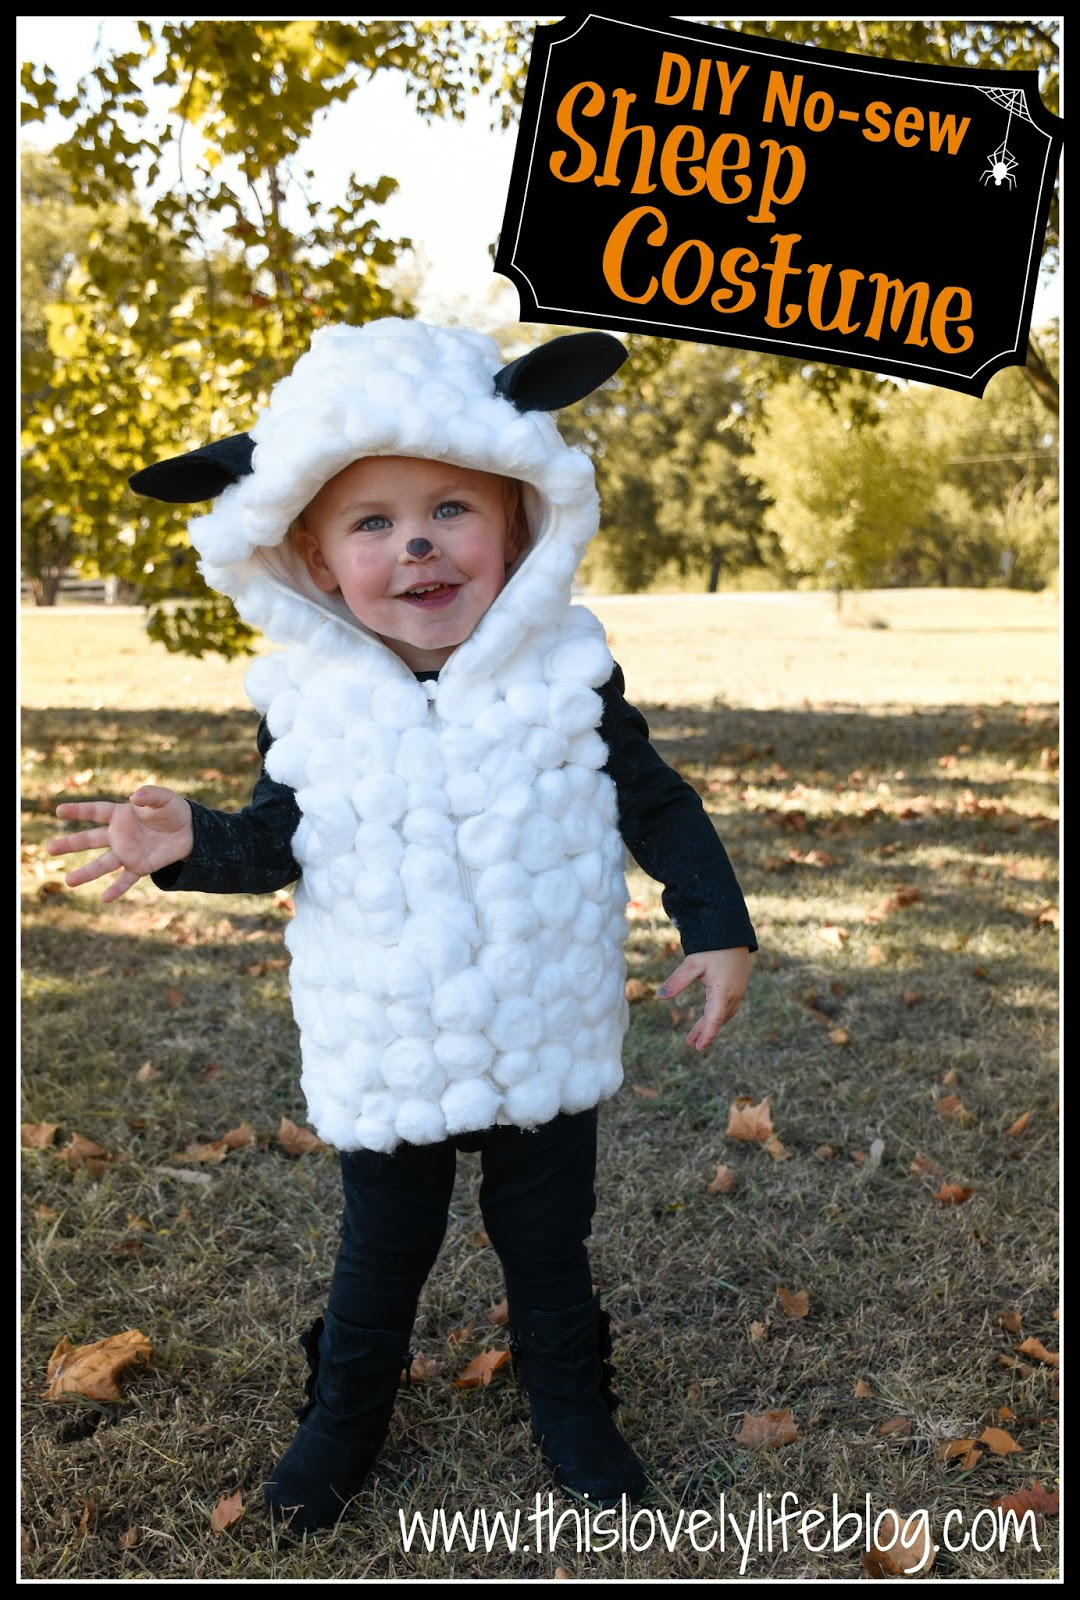 10.20.2015  sc 1 st  This Lovely Life & This Lovely Life: DIY NO-SEW SHEEP COSTUME